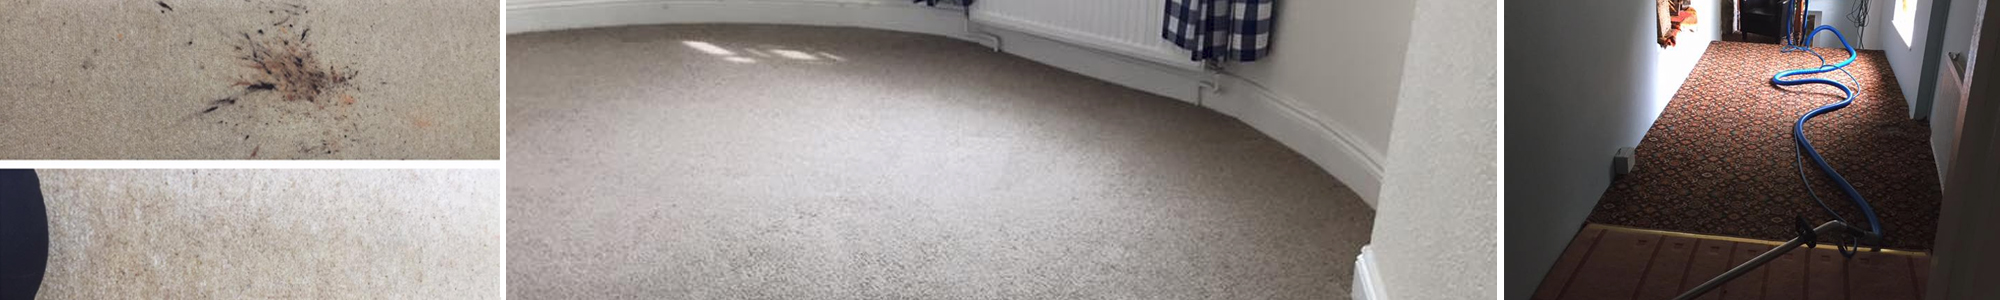 Carpet Cleaners Exeter